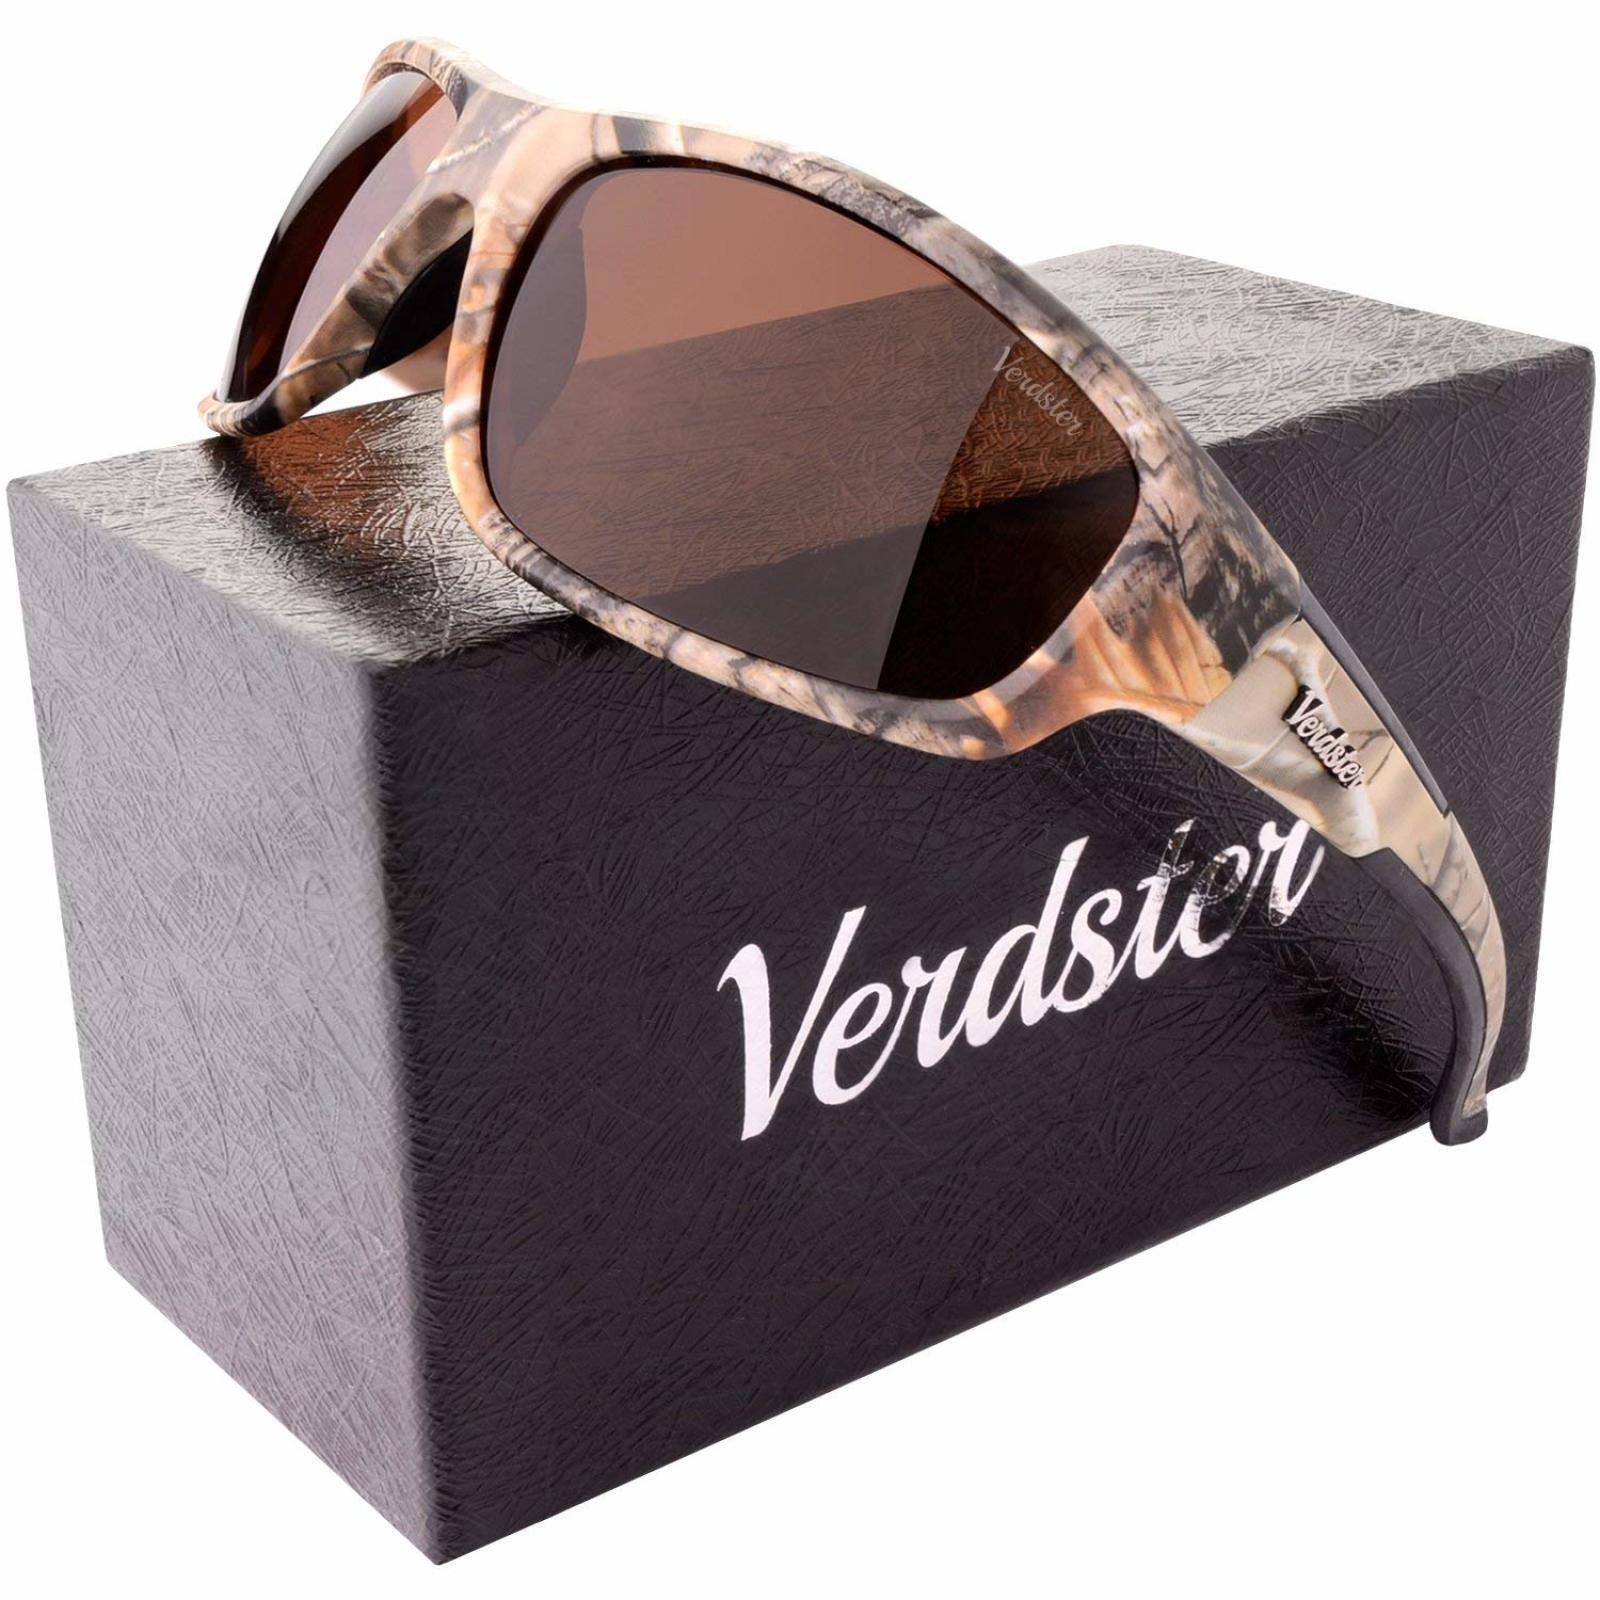 1a5622ec72 Verdster TourDePro POLARISED Sunglasses For Men and Women - Great for.